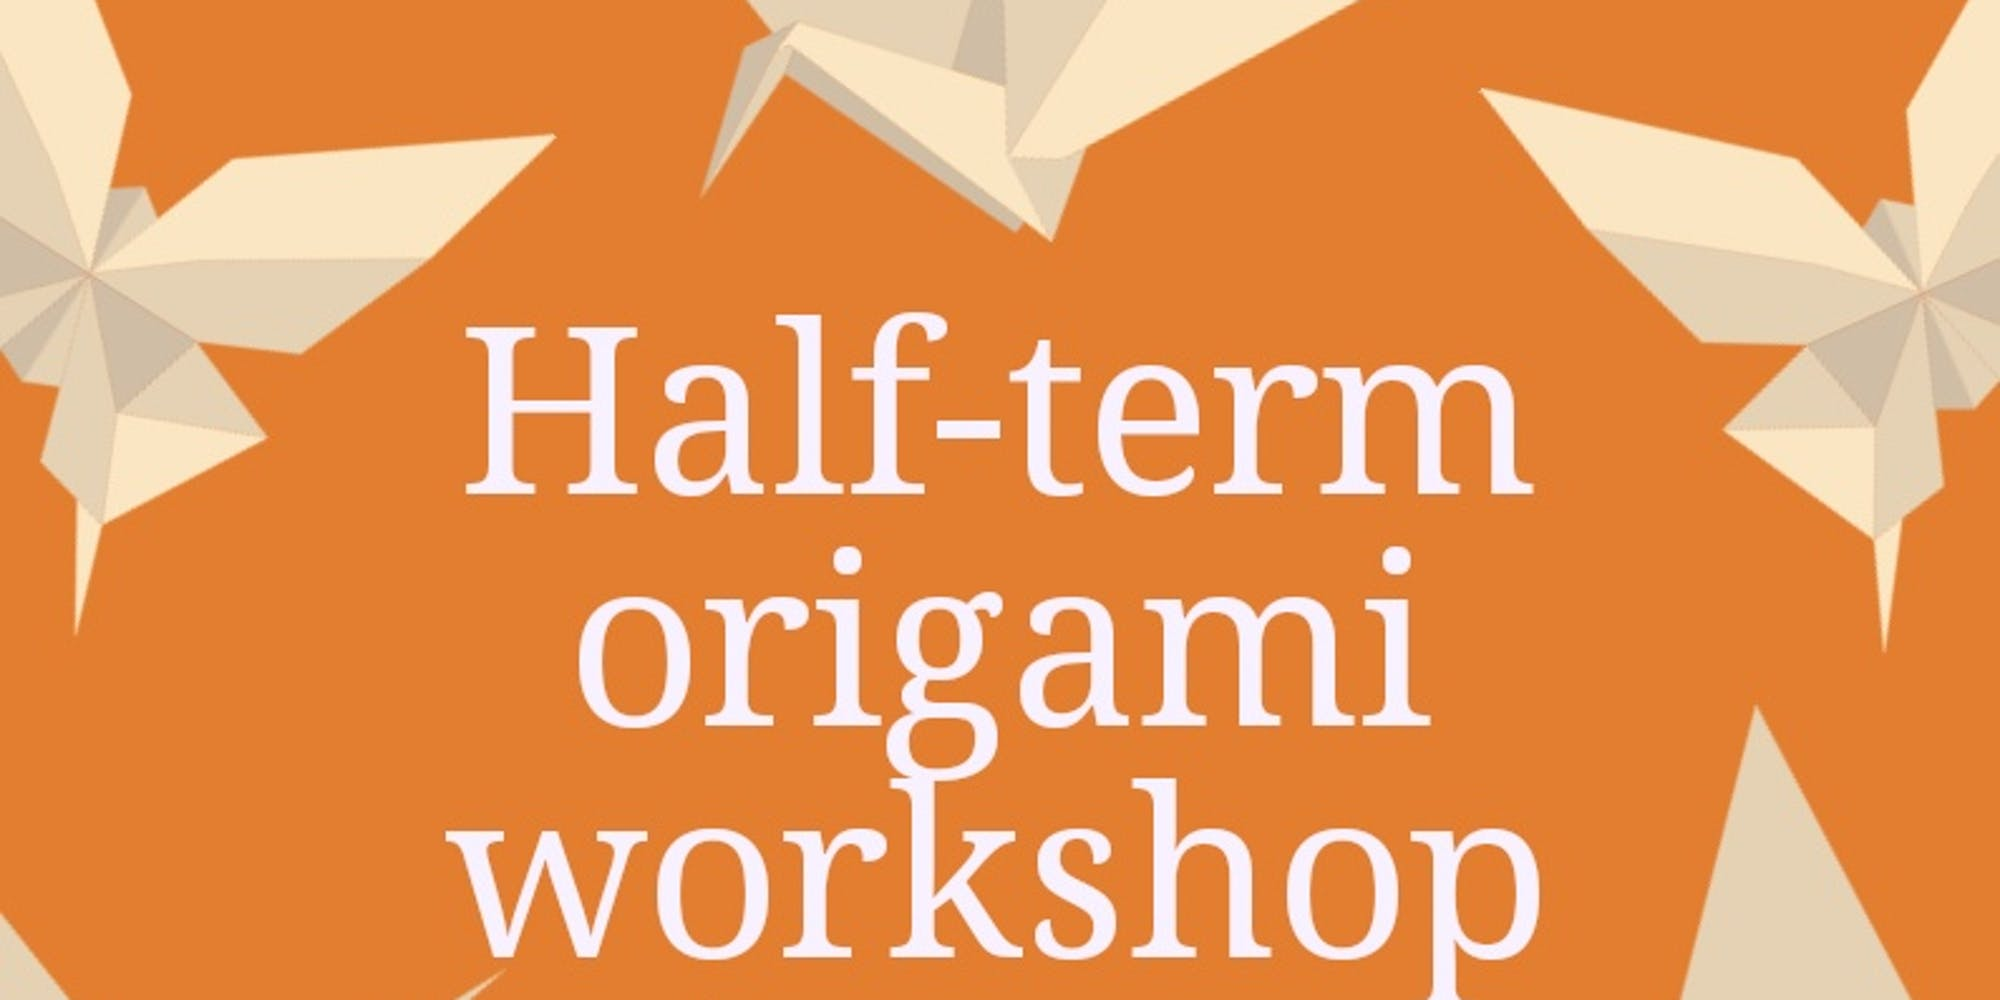 Children's Origami Workshop at ArloArts